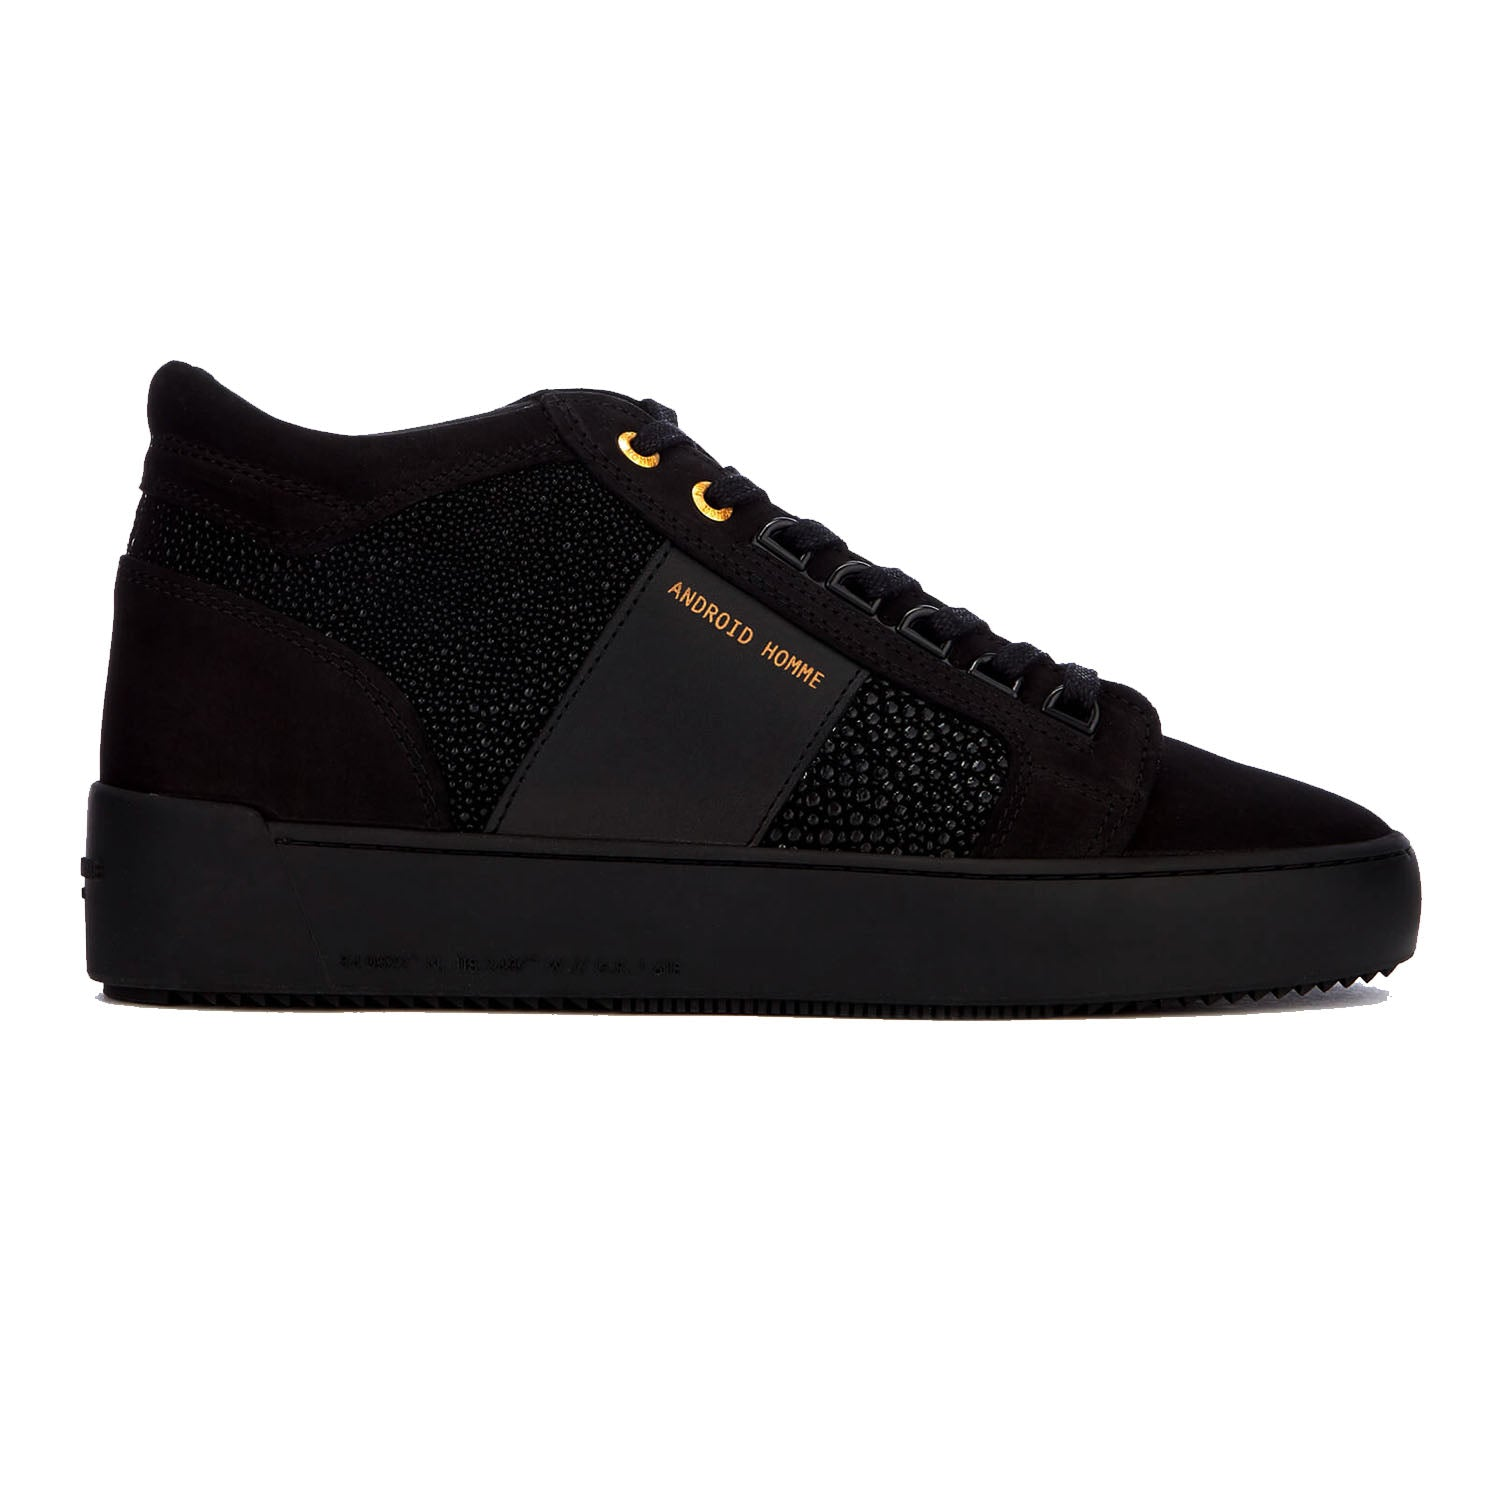 Android Homme Propulsion Mid Carbon Black Stingray Suede